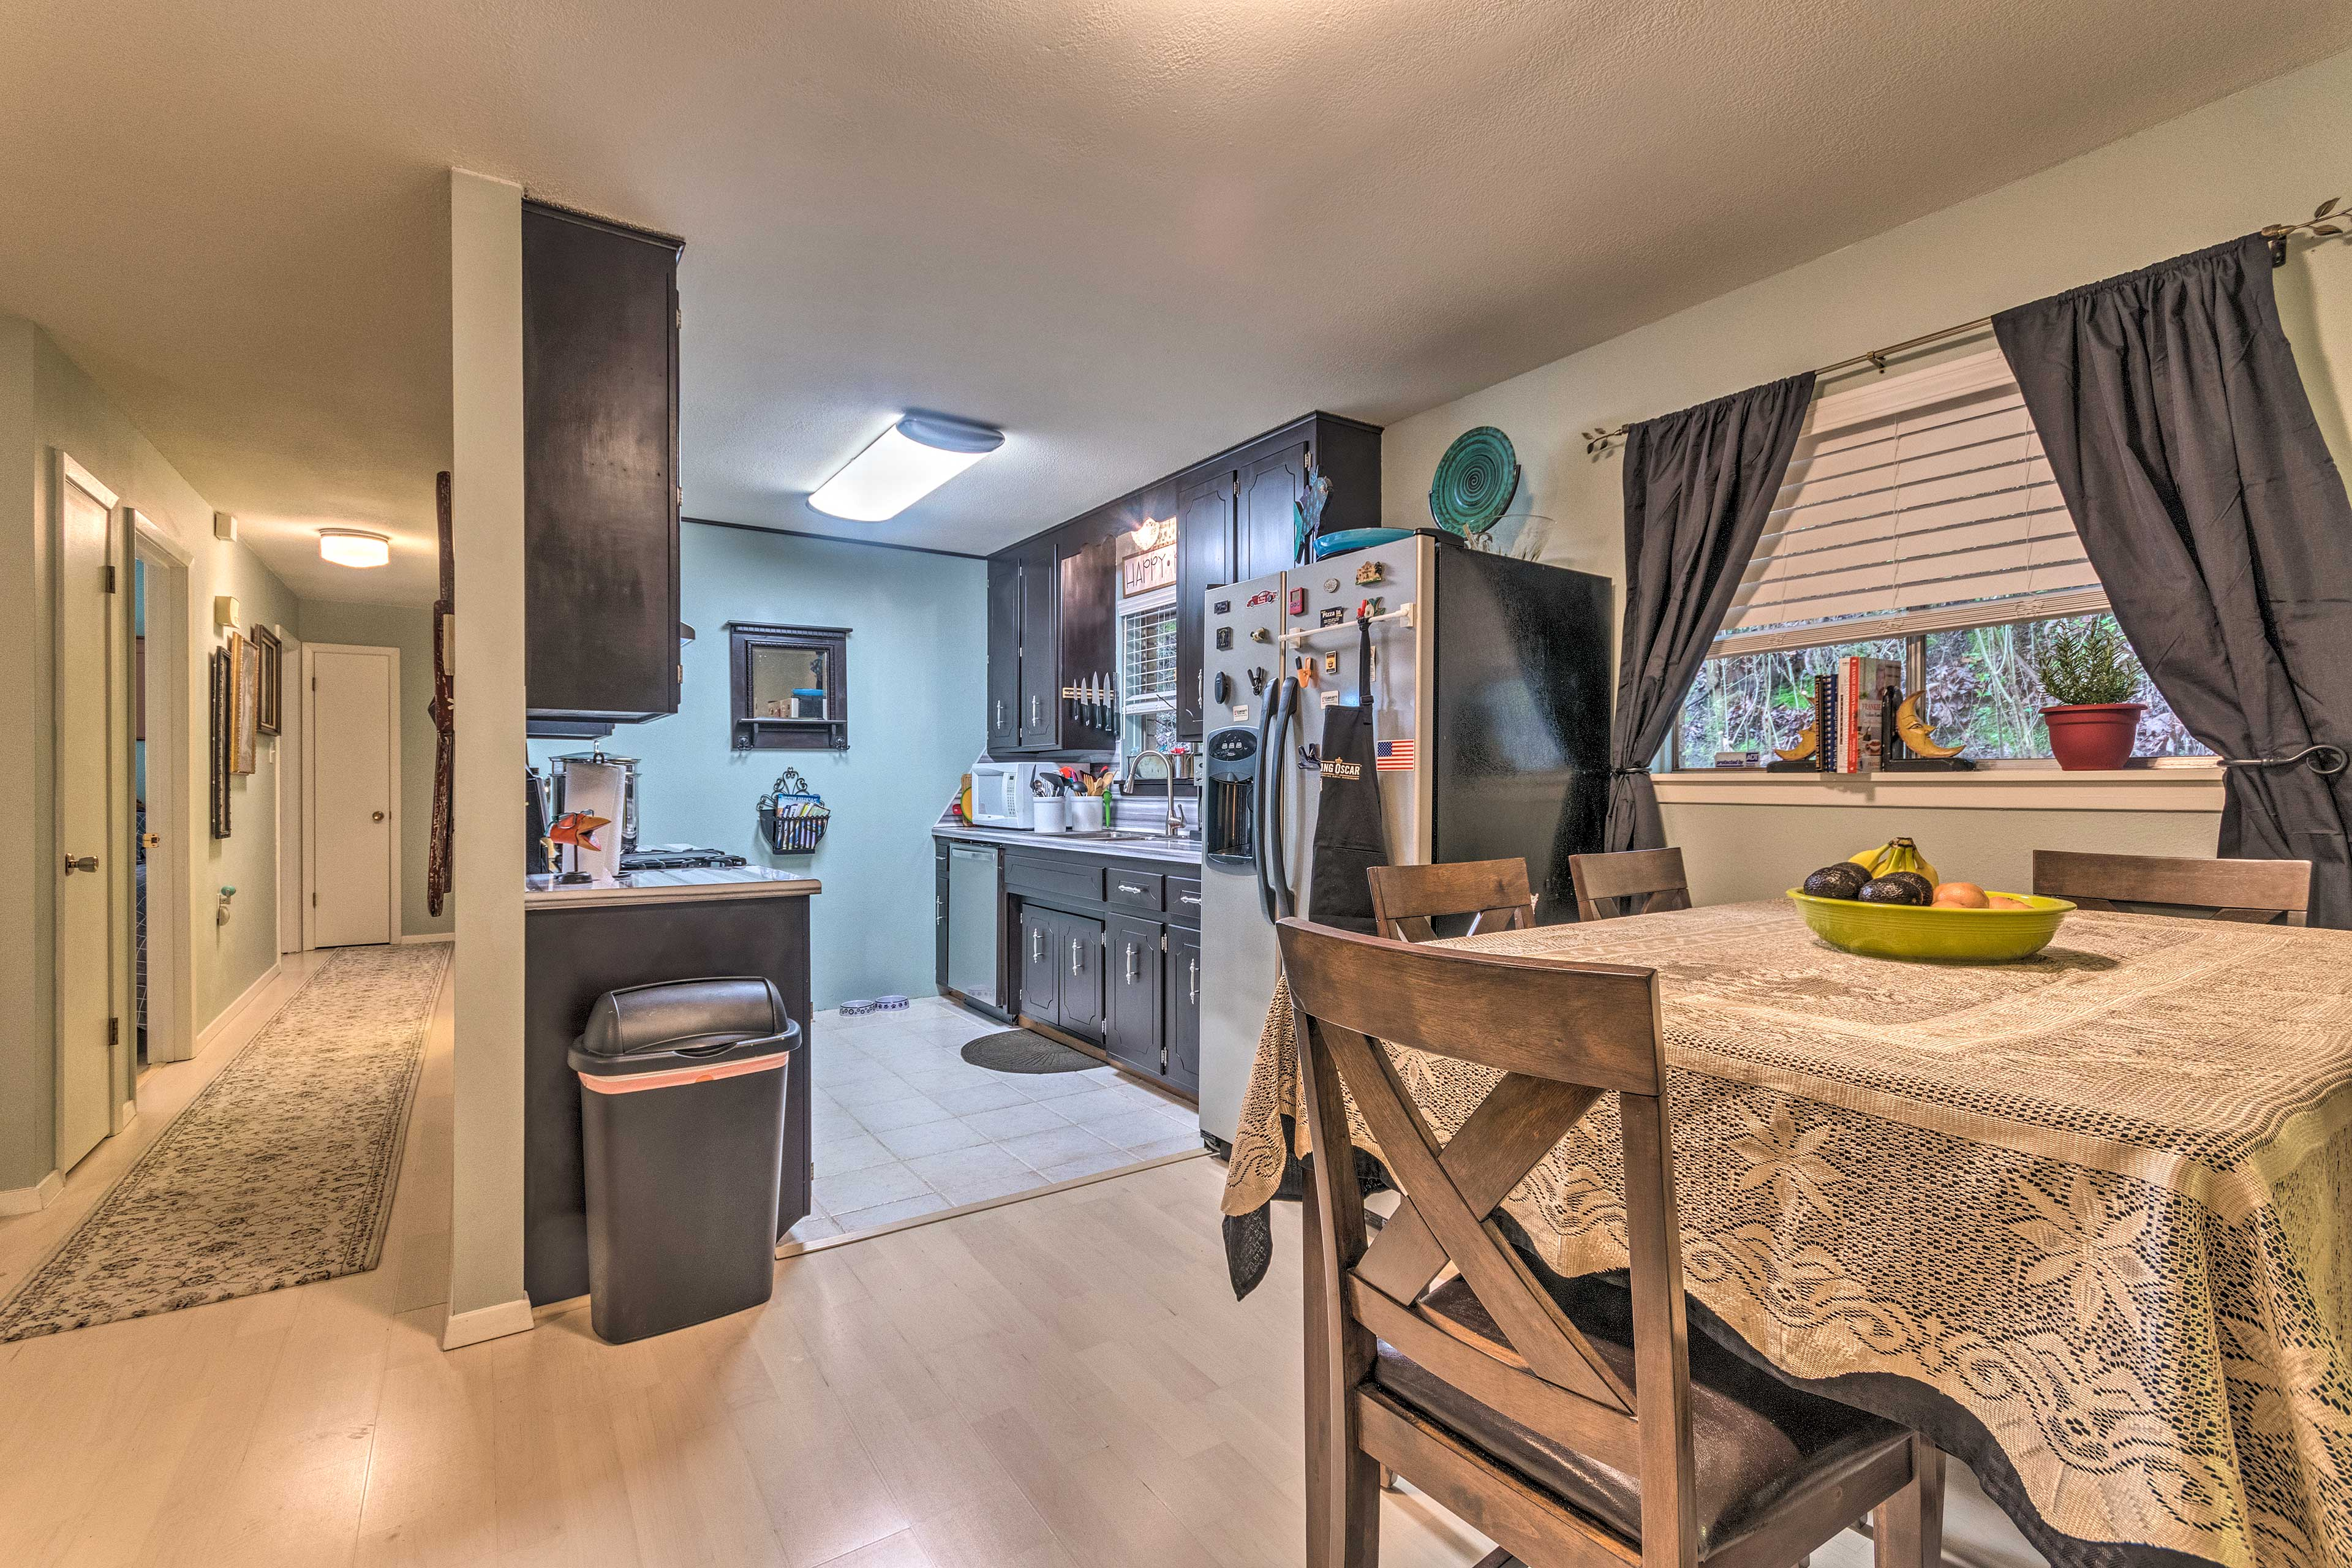 The fully equipped kitchen is steps from the dining table.